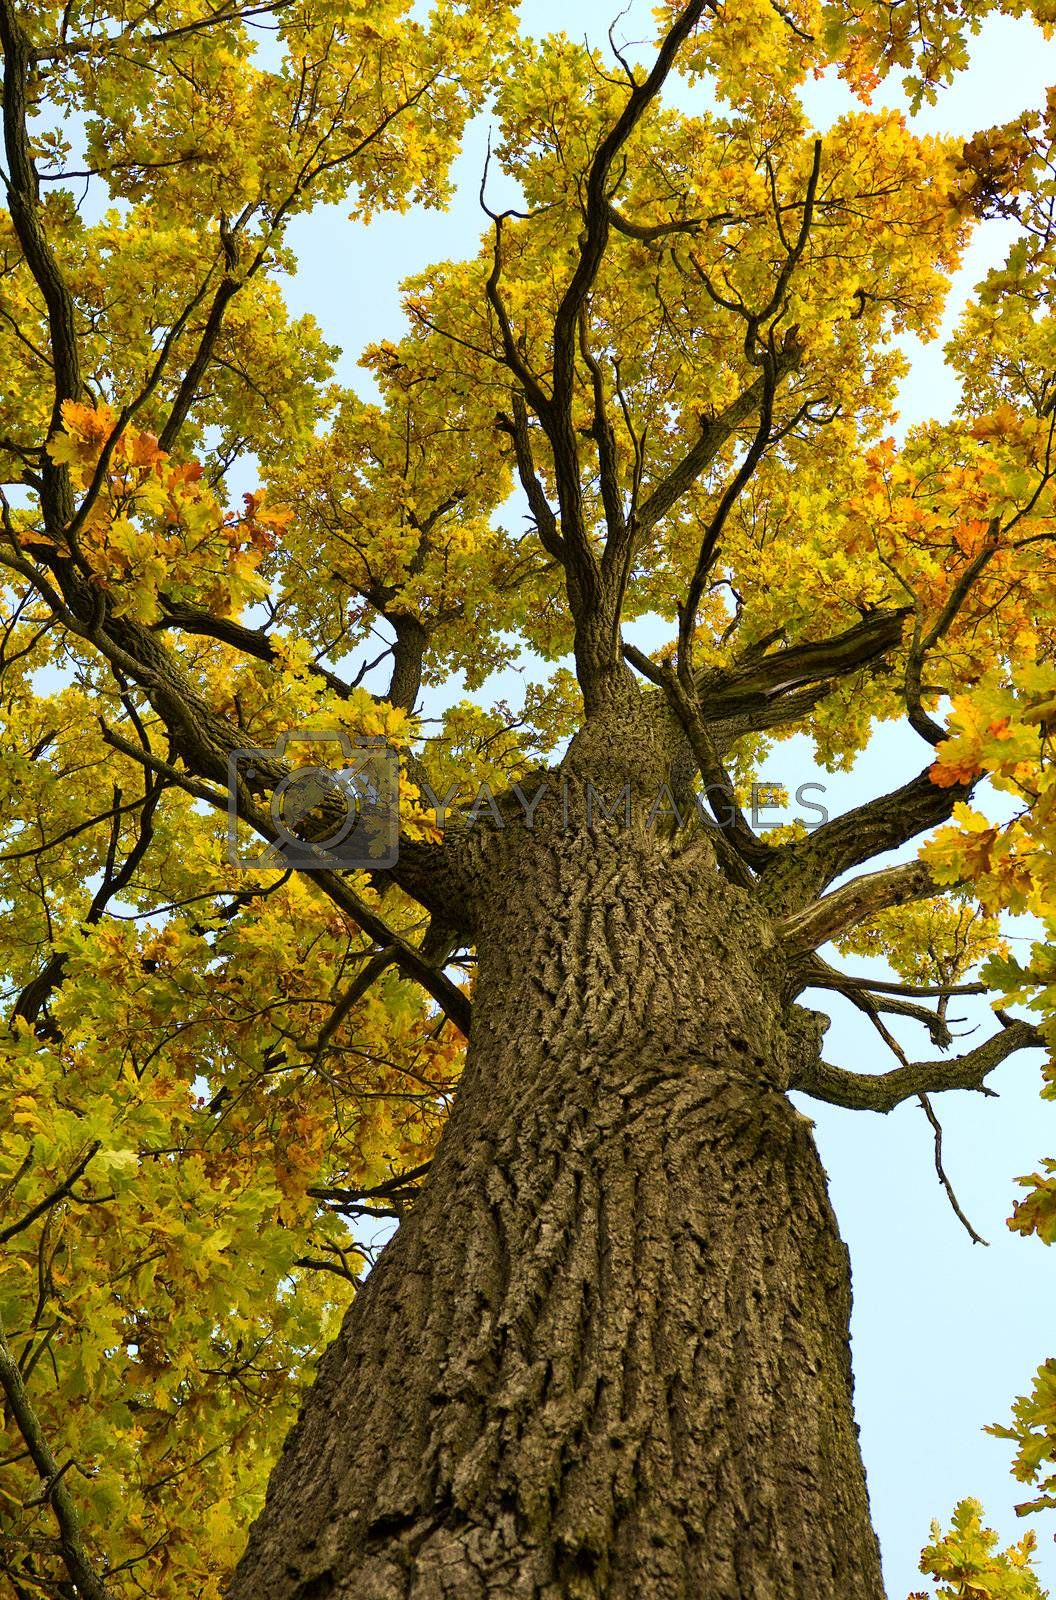 oak tree with yellow leaves in autumn